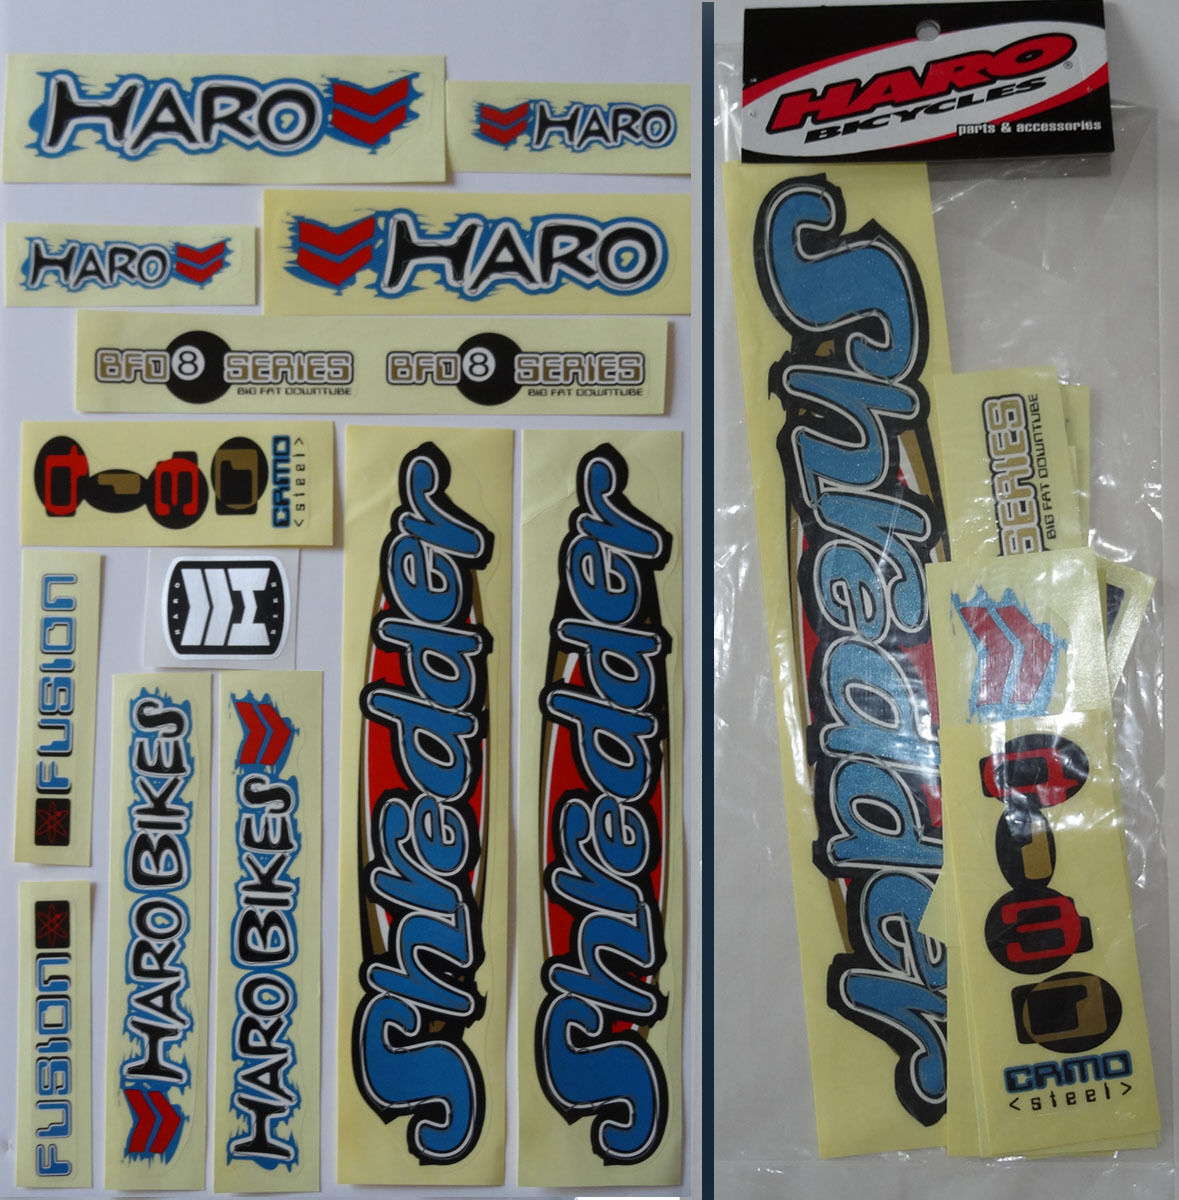 HARO SHrotDER BMX Sticker Set - '90s Old School Freestyle B.M.X. Decal Set - NOS